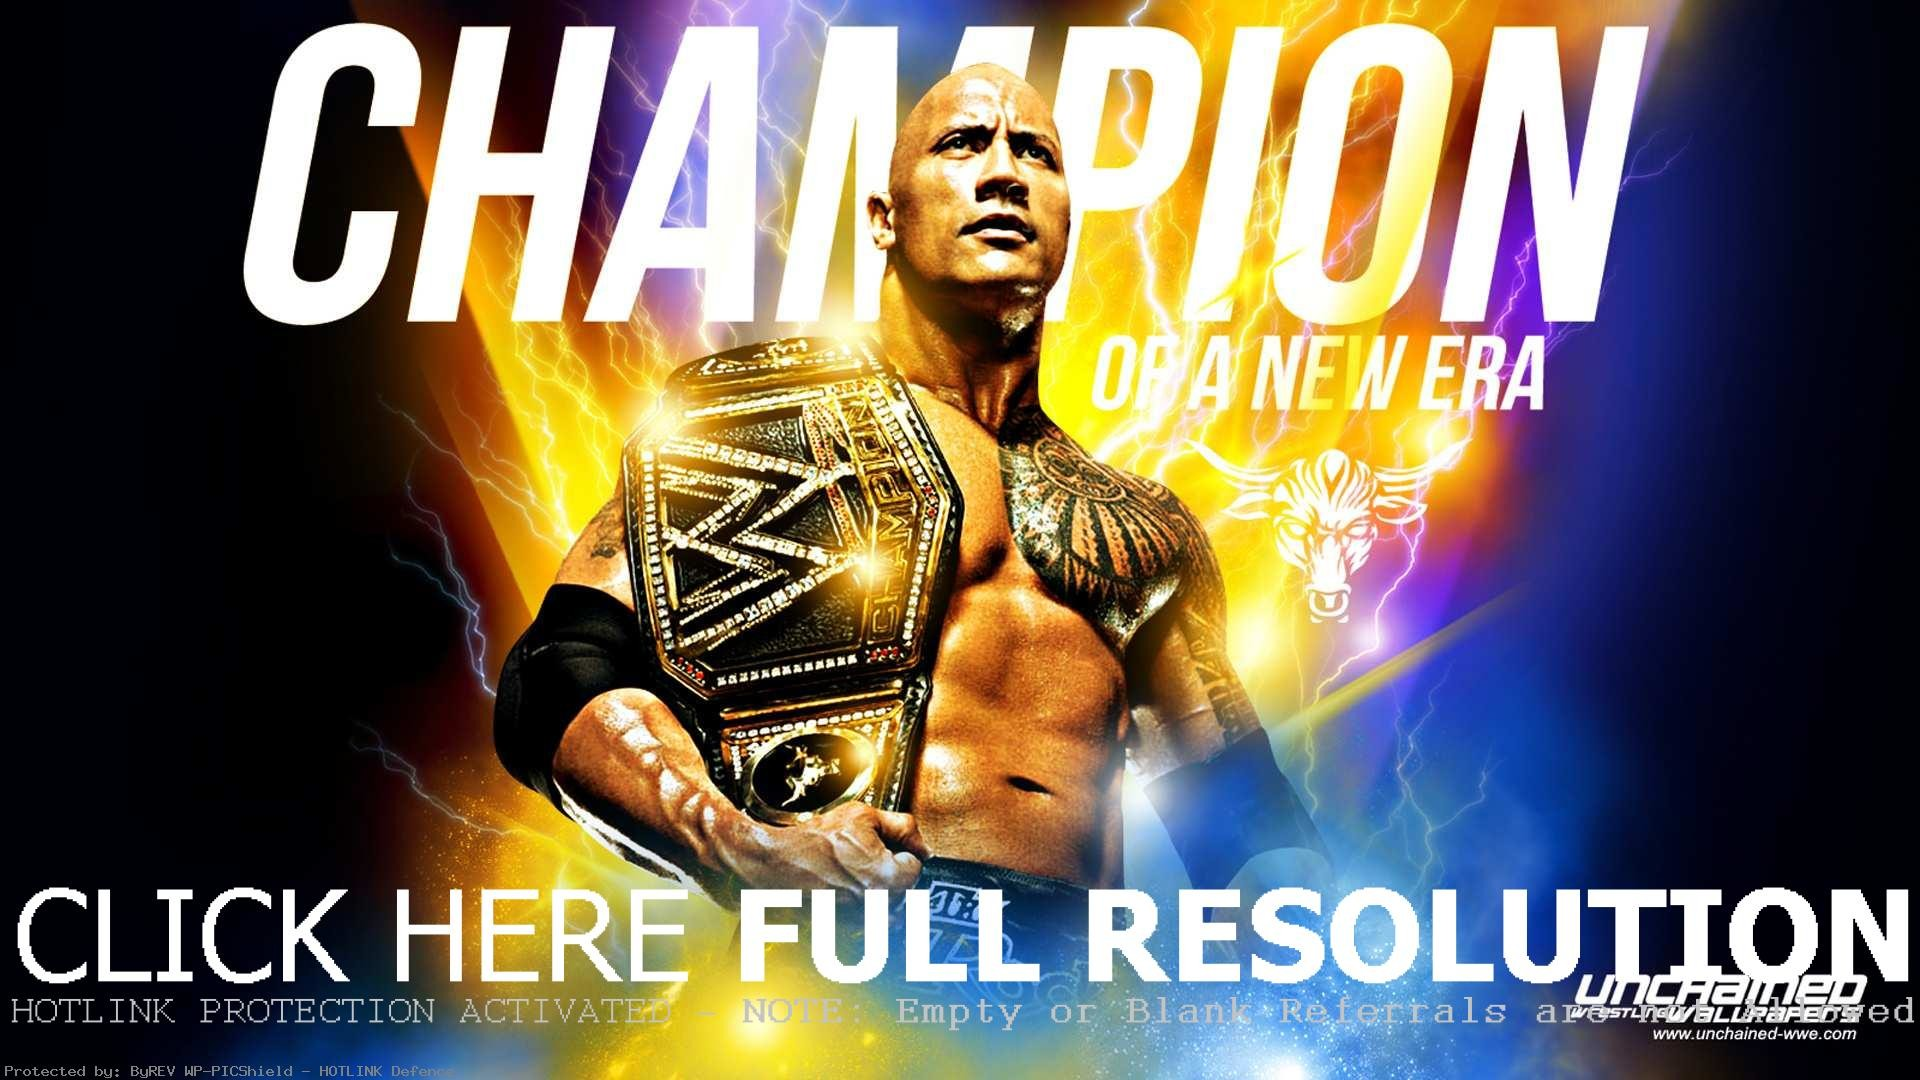 1920x1080 WWE Wrestlemania XXIX Custom Wallpaper: The Rock vs Brock Lesnar 1920×1080  Wwe Rock